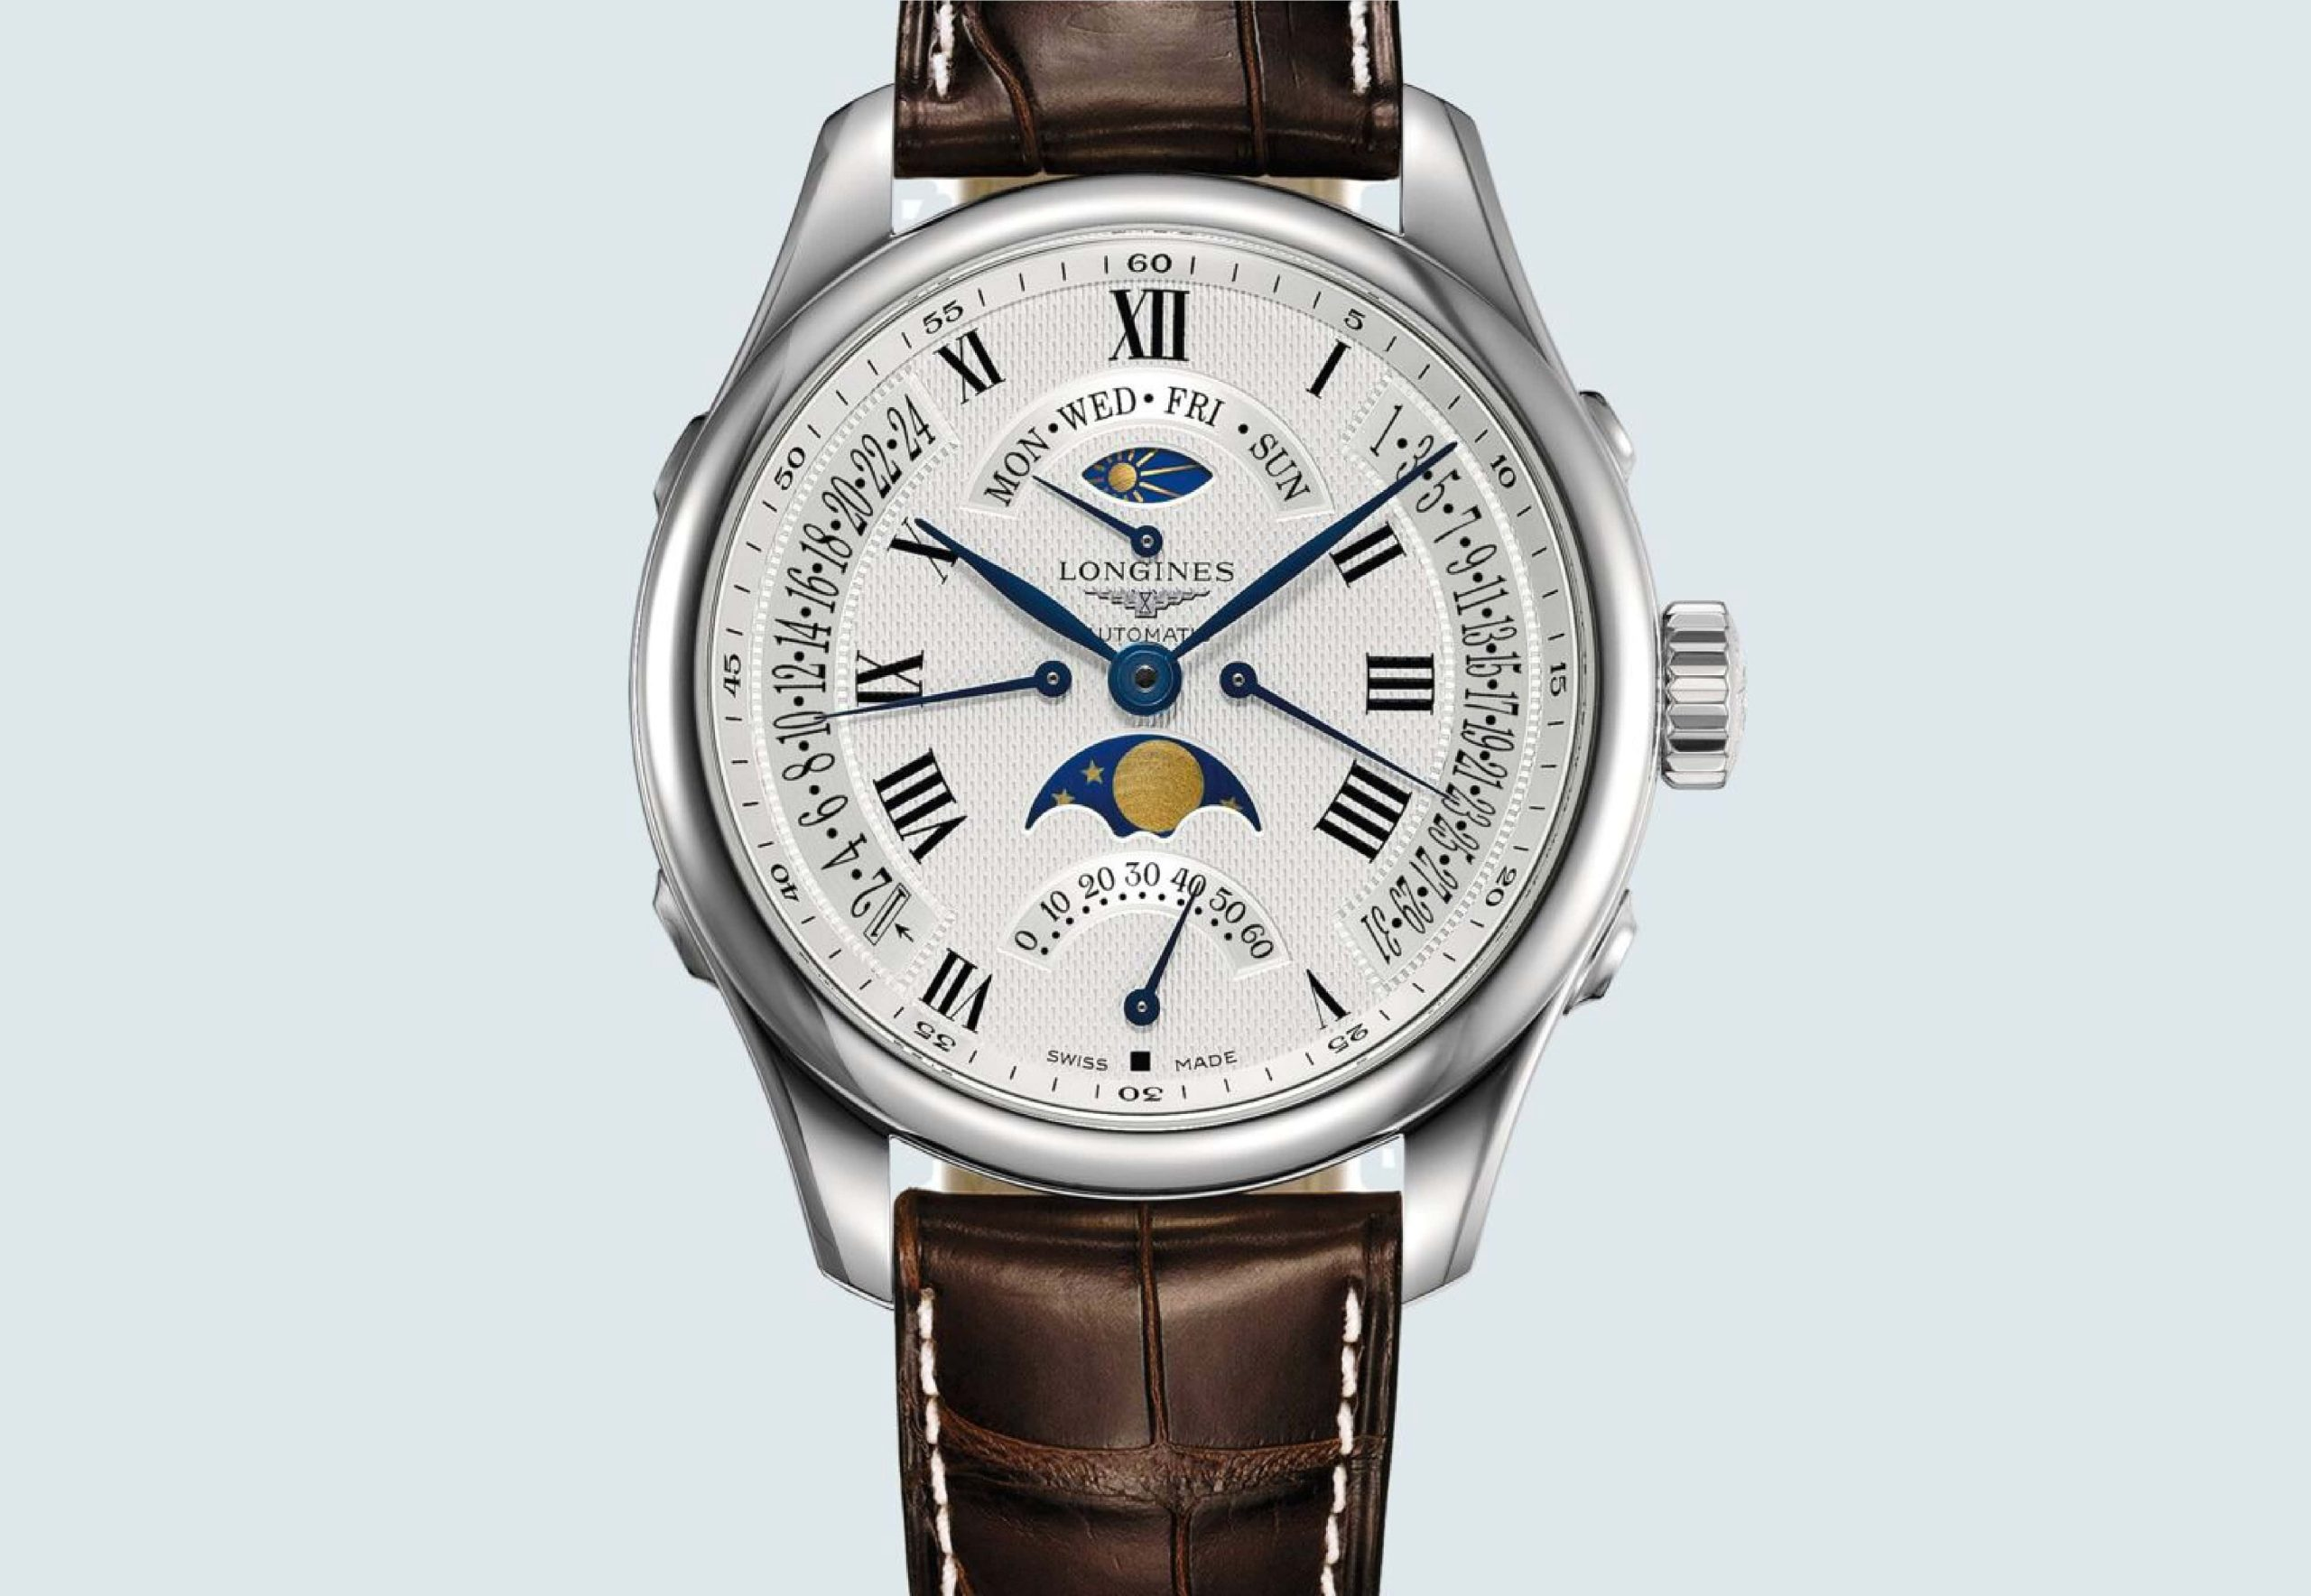 Best moonphase watch under 5000 - The Longines Master Collection